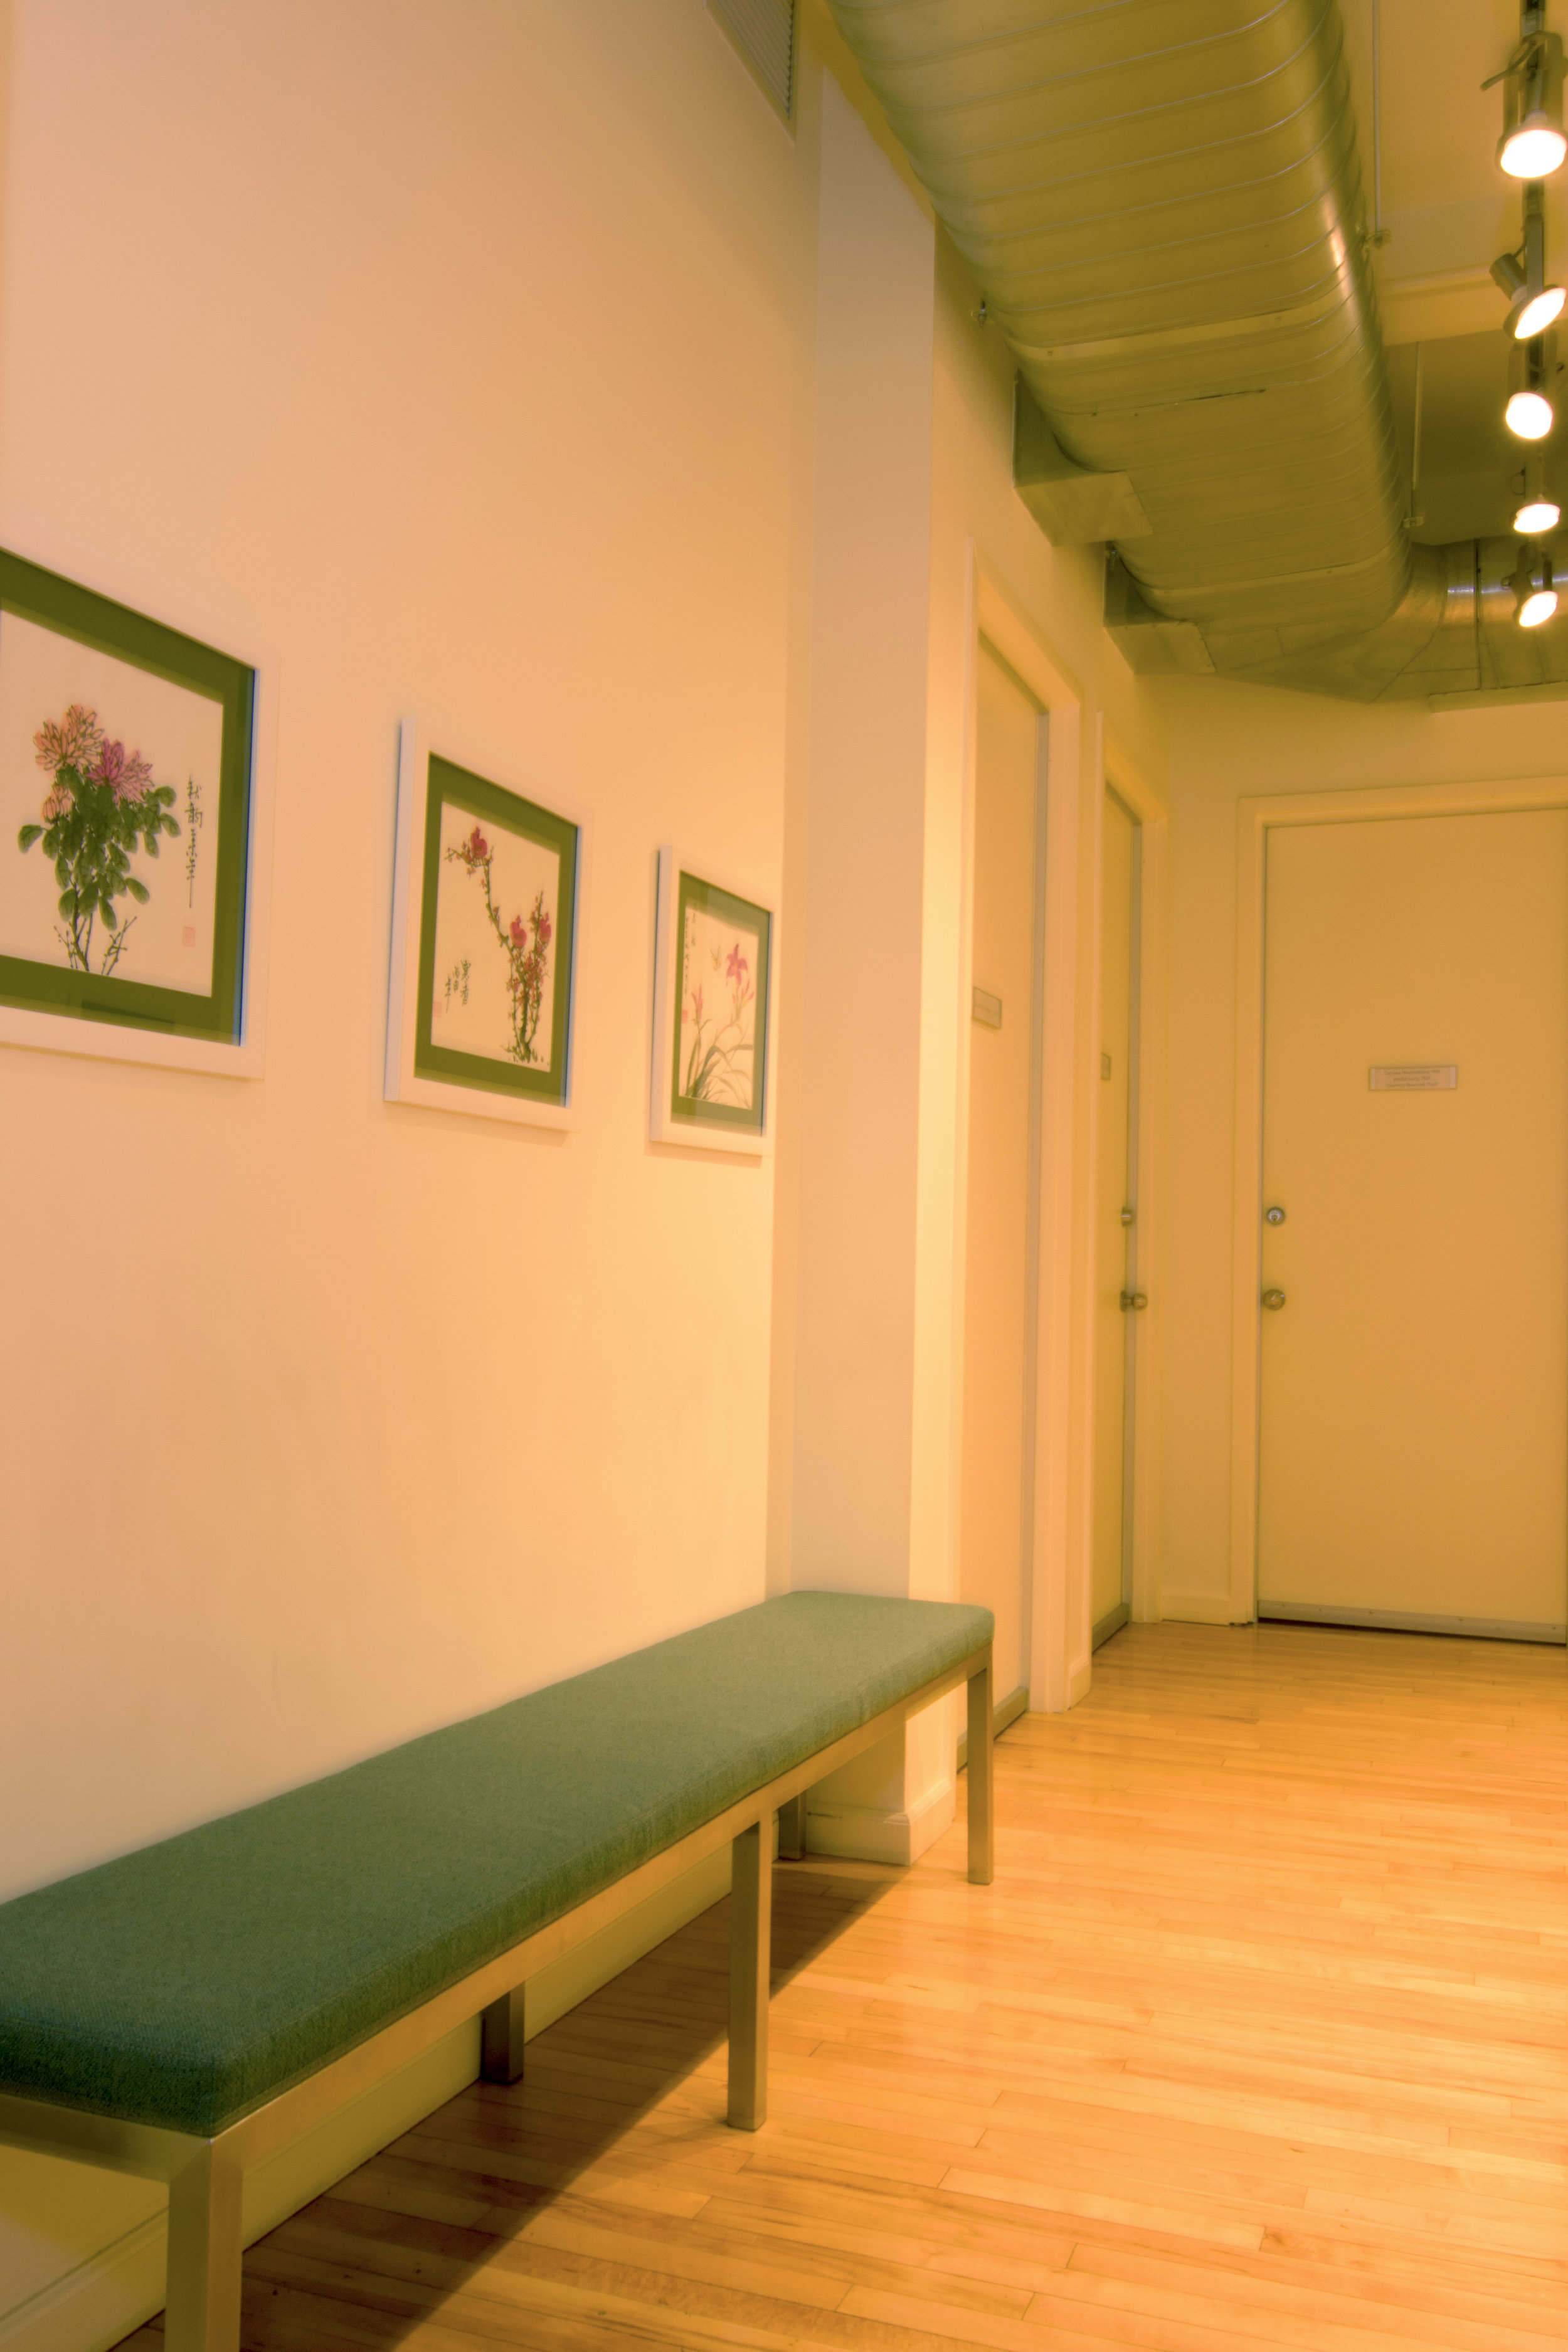 serene-offices-therapy-office-flatiron-21st-street-waiting-room-bench.jpg